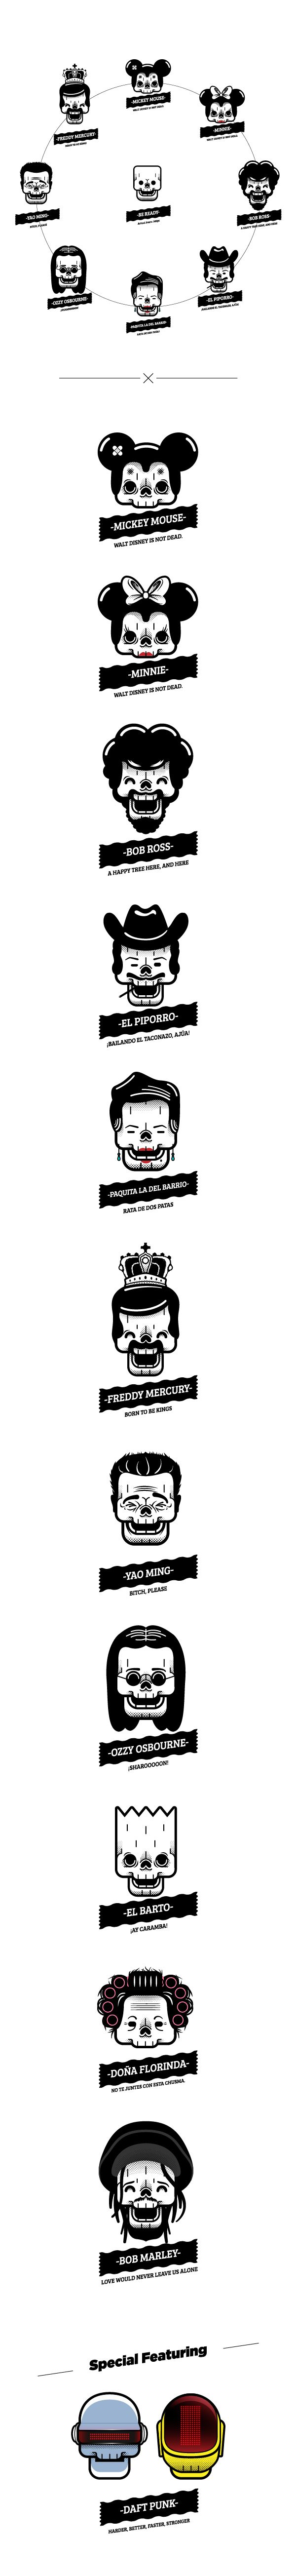 Las Calaveras Famosas Cartooning, Character Design, Illustration Las Calaveras Famosas (Famous Skulls).     Some famous people.      Downloa...